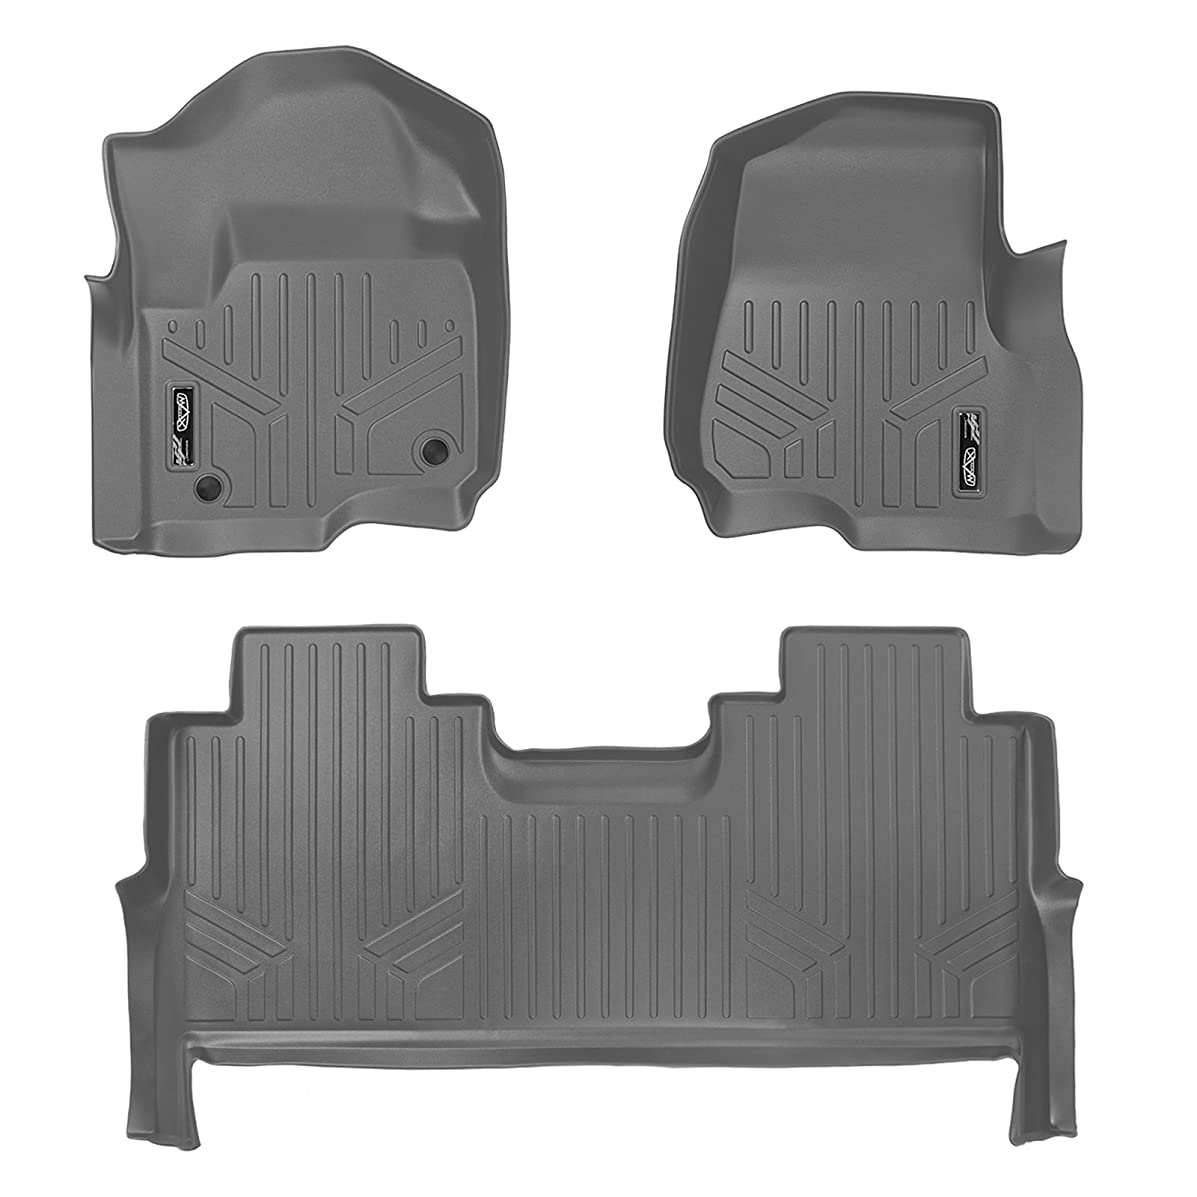 MAX LINER A2246/B2246 Gray Floor Mats 2 Liner Set Grey for 2017-2019 Ford F-250/F-350 Super Duty Crew Cab with 1st Row Bucket Seats